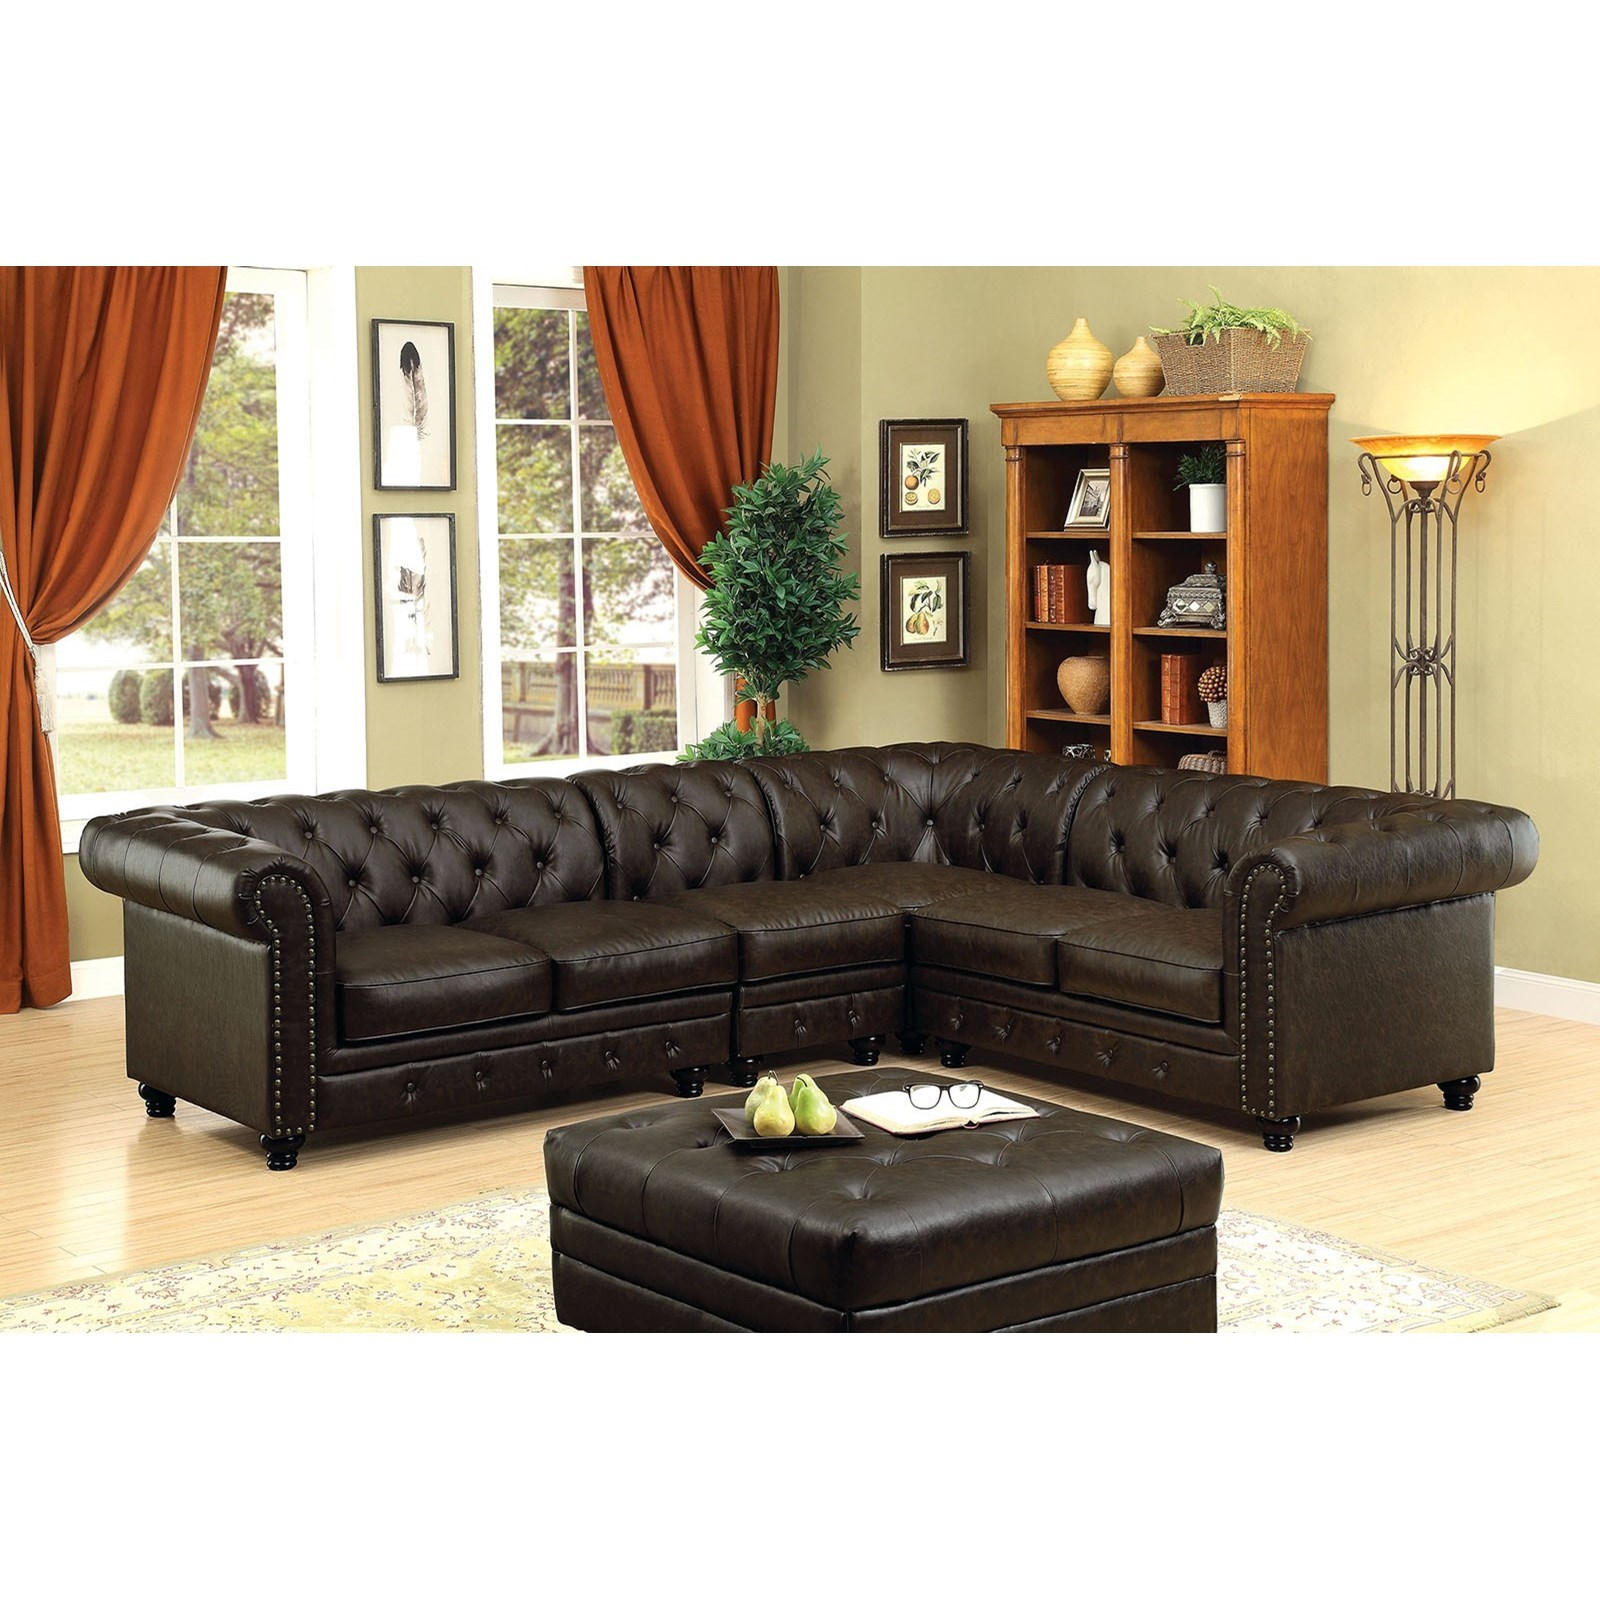 Stanford Sectional Leatherette by Furniture of America at Nassau Furniture and Mattress